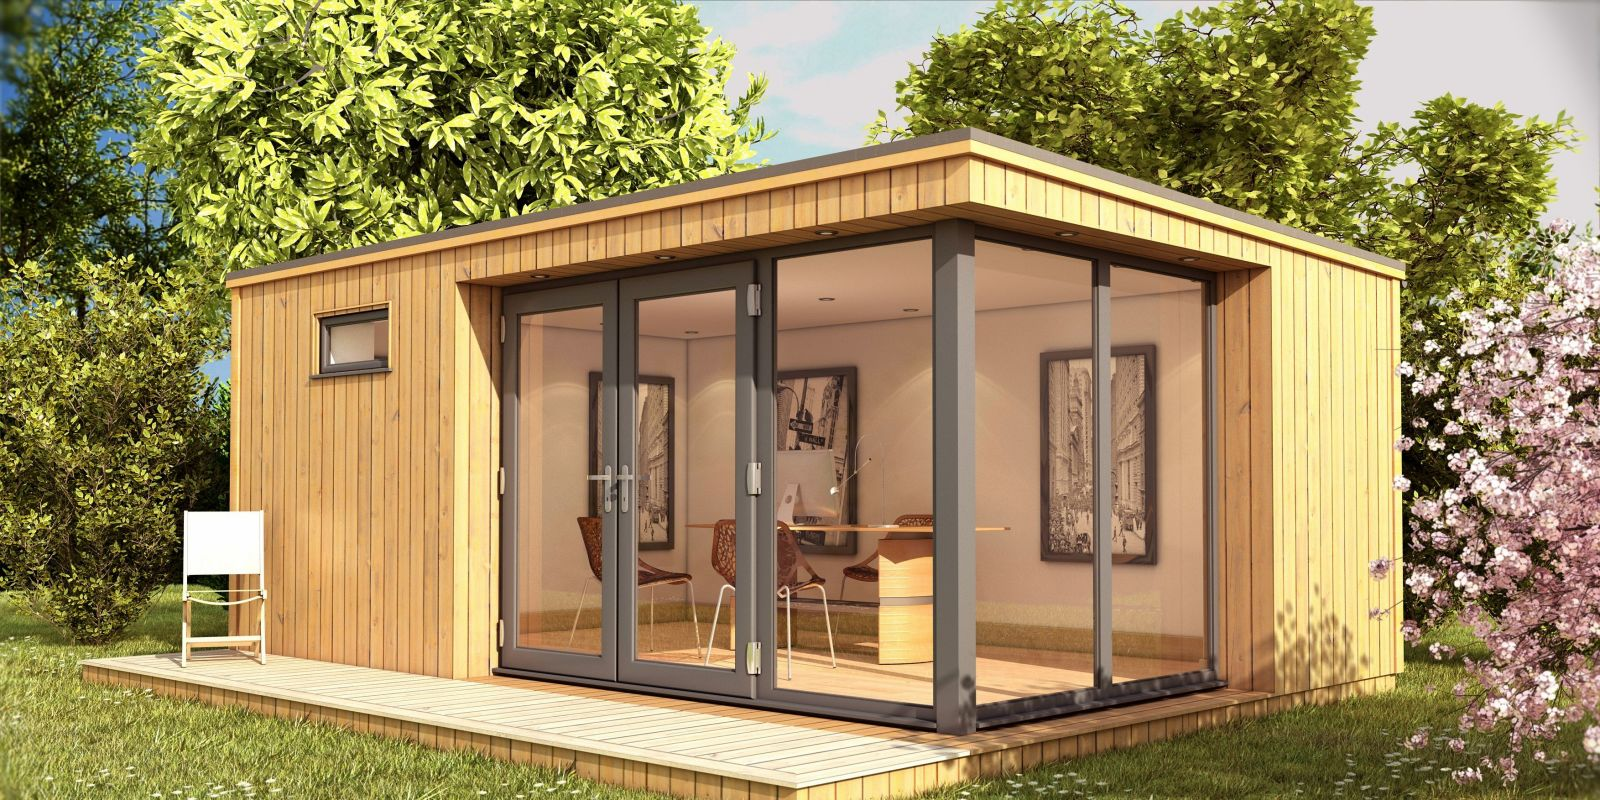 10 fun and creative garden room ideas for The garden room company